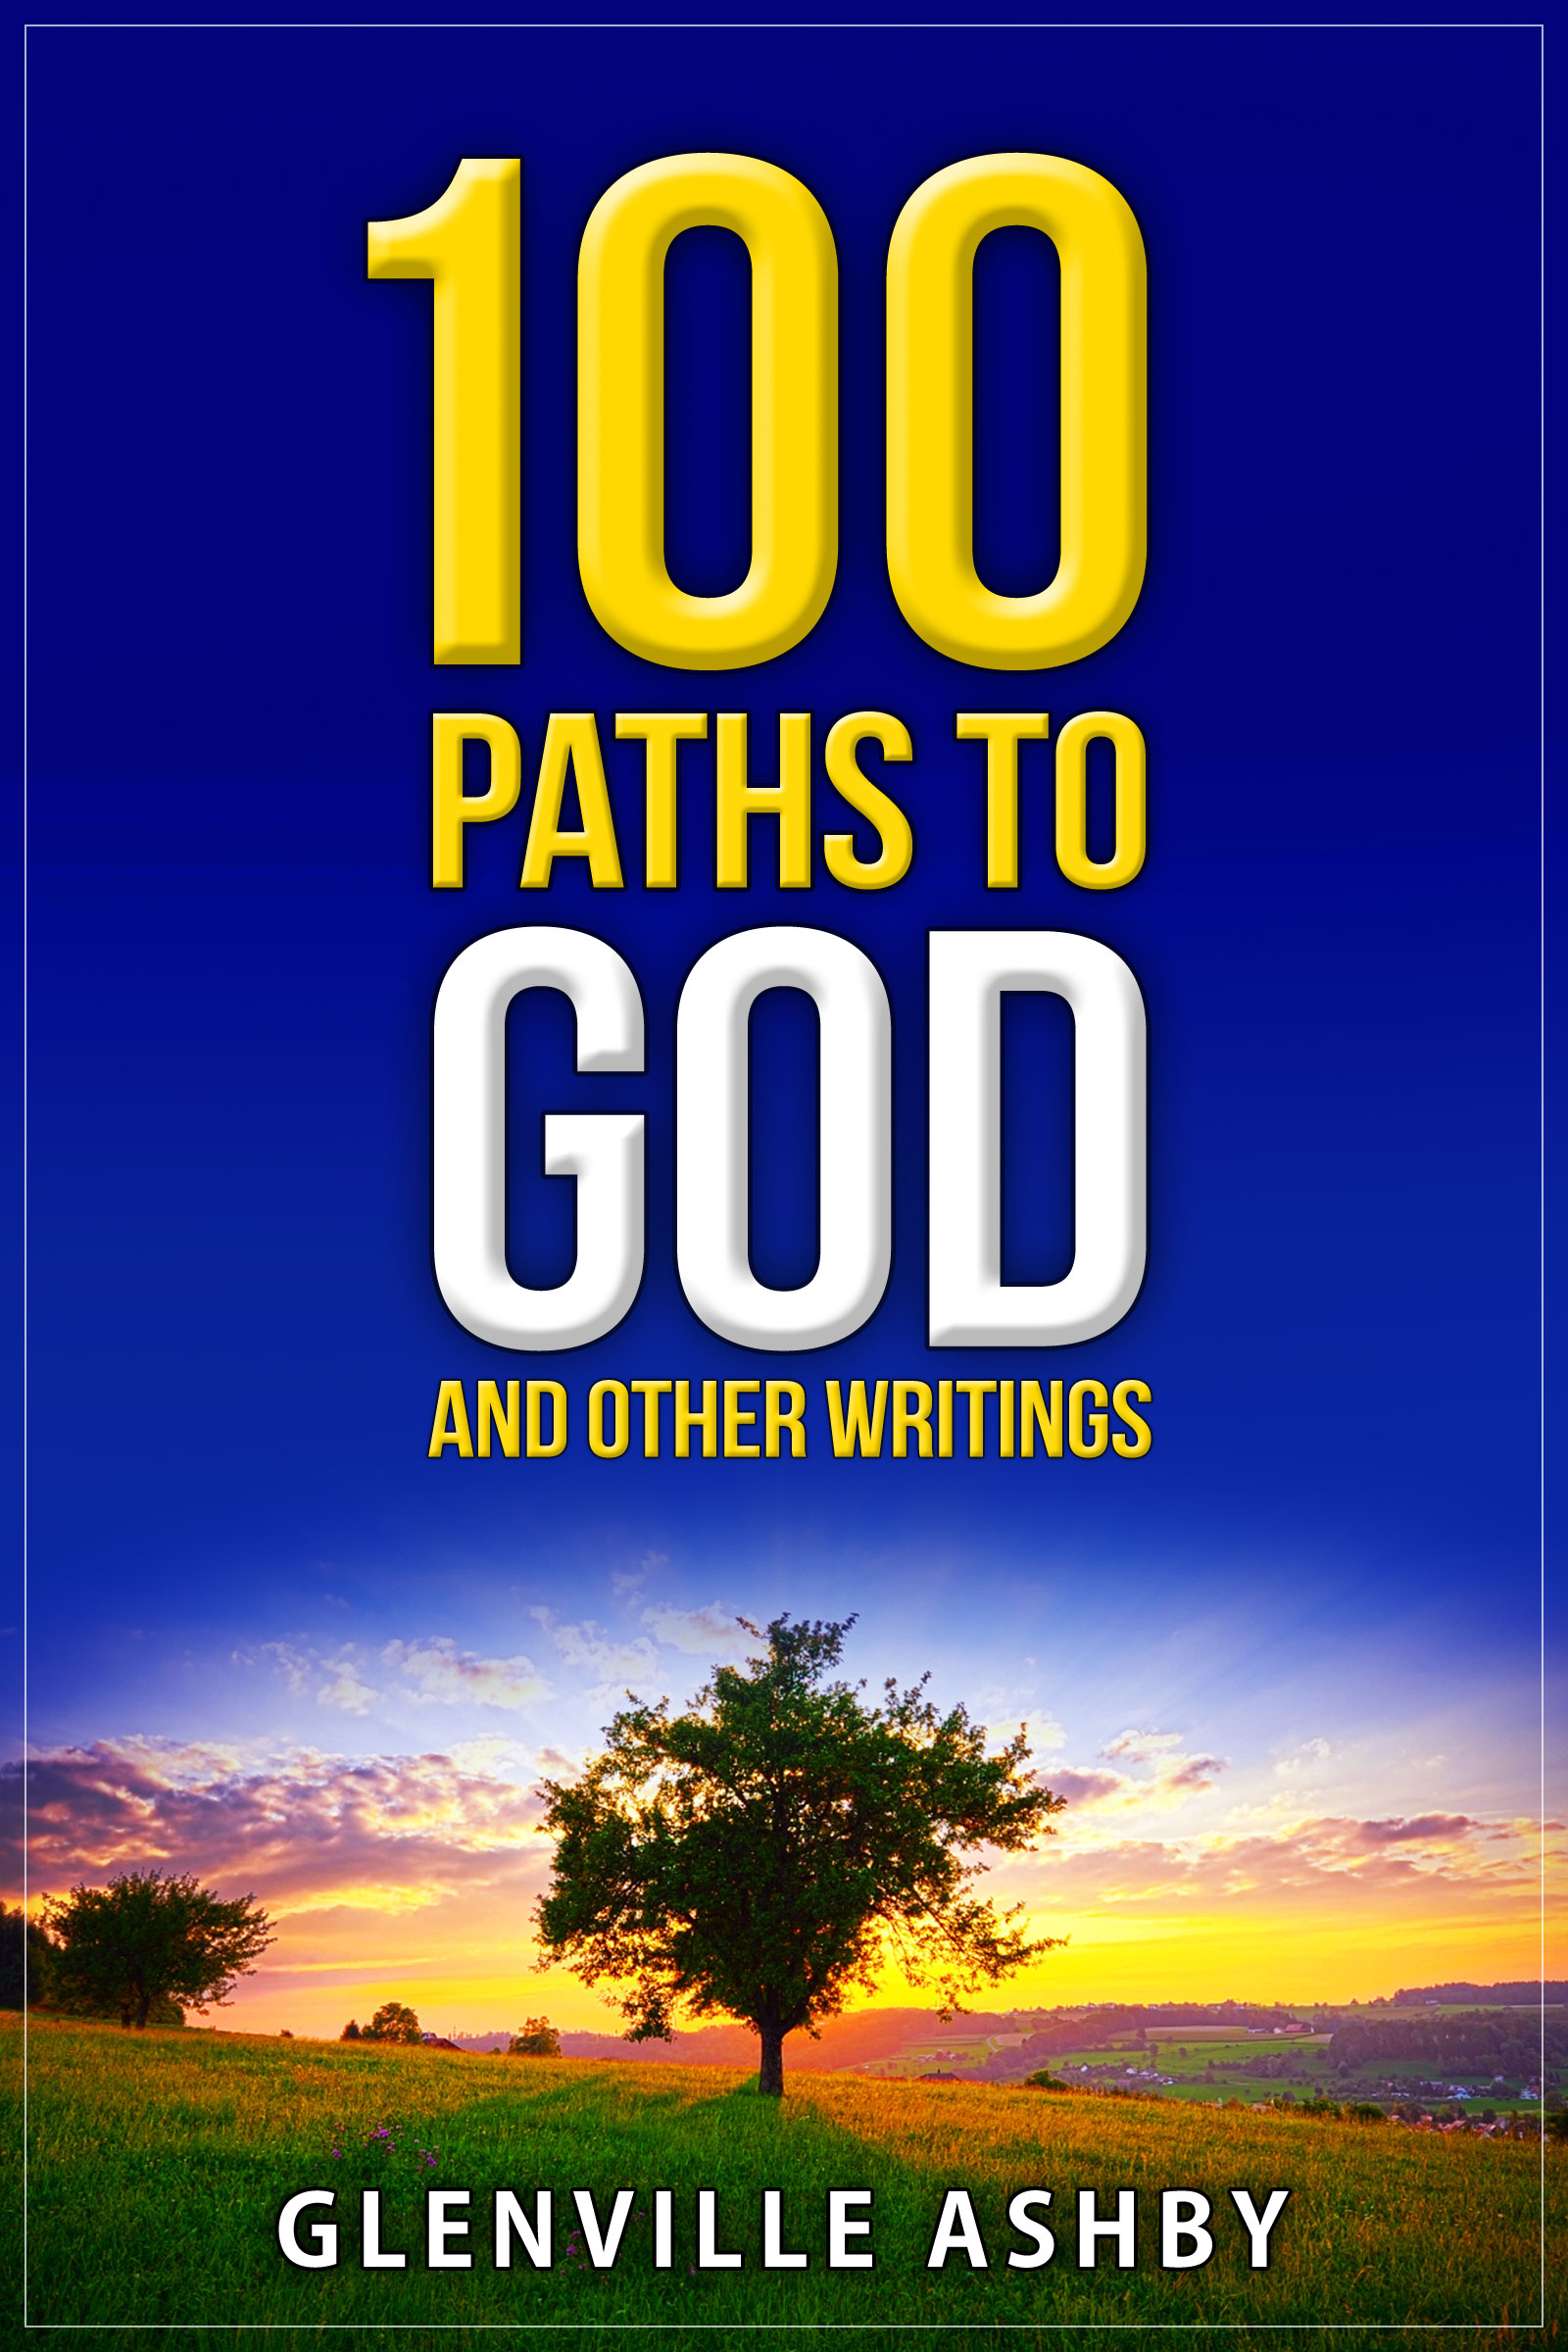 100 paths to God and Other Writings